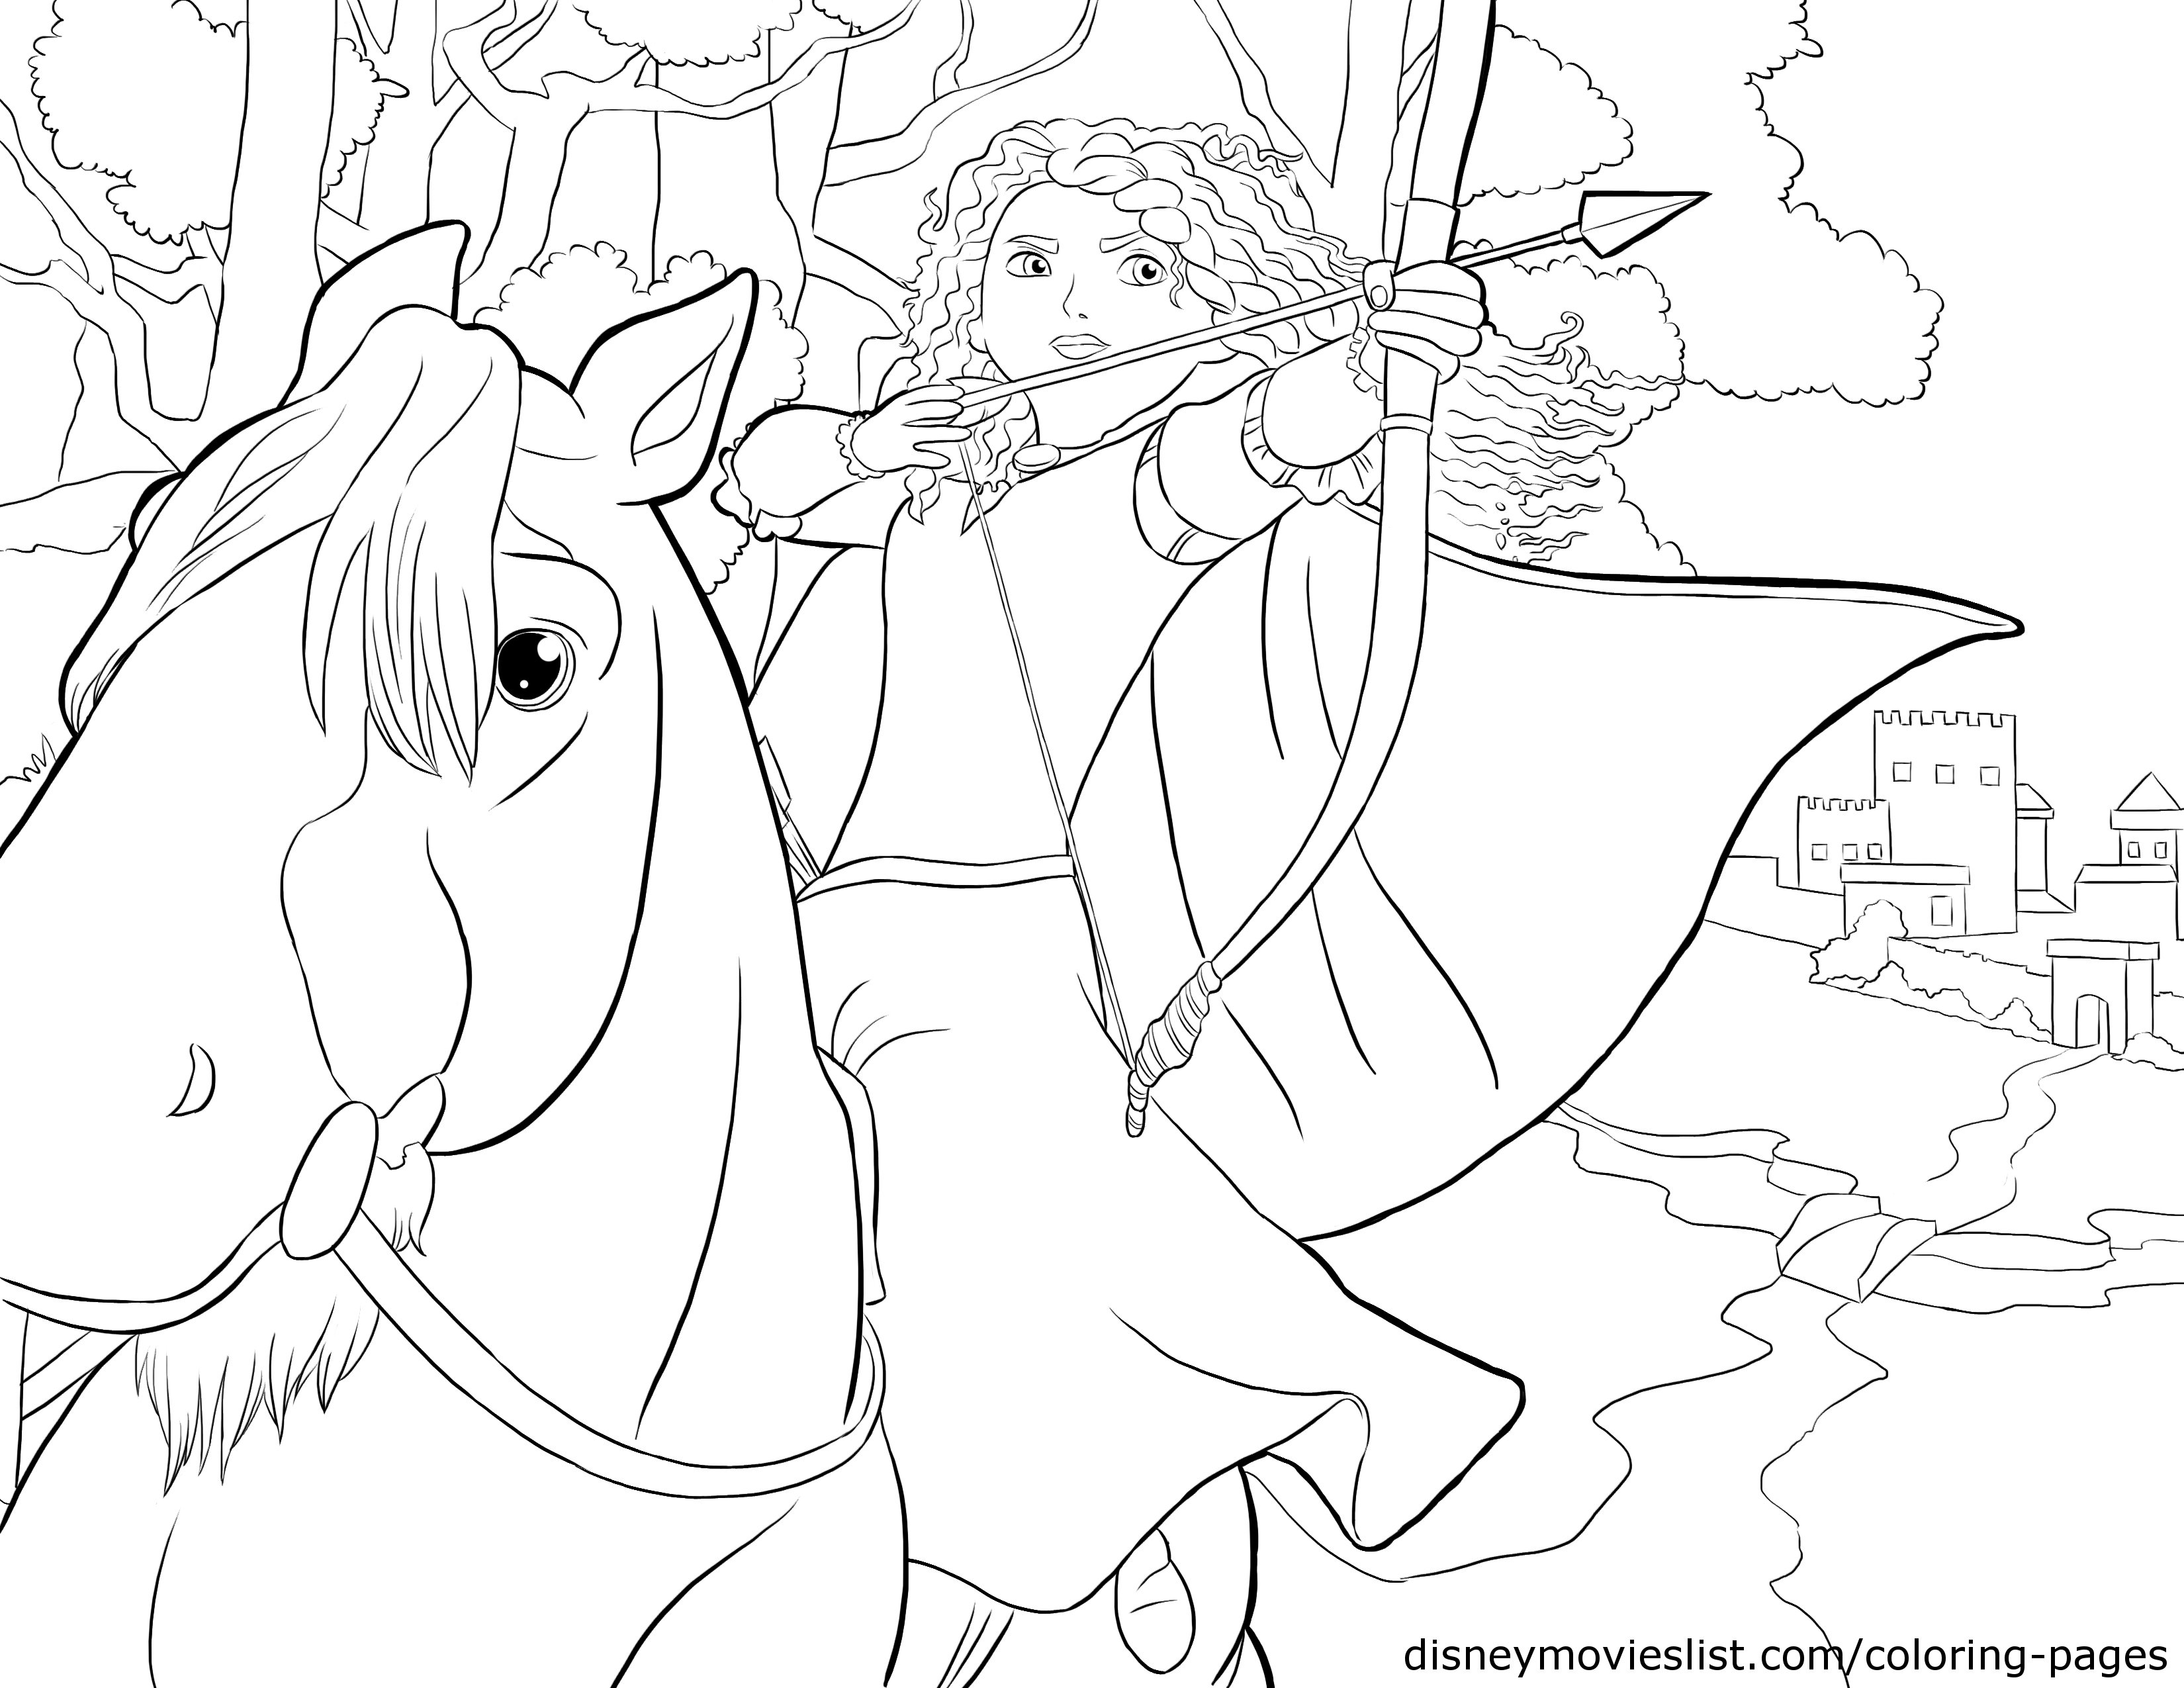 Story of a courageous girl Brave 22 Brave coloring pages Free Printables